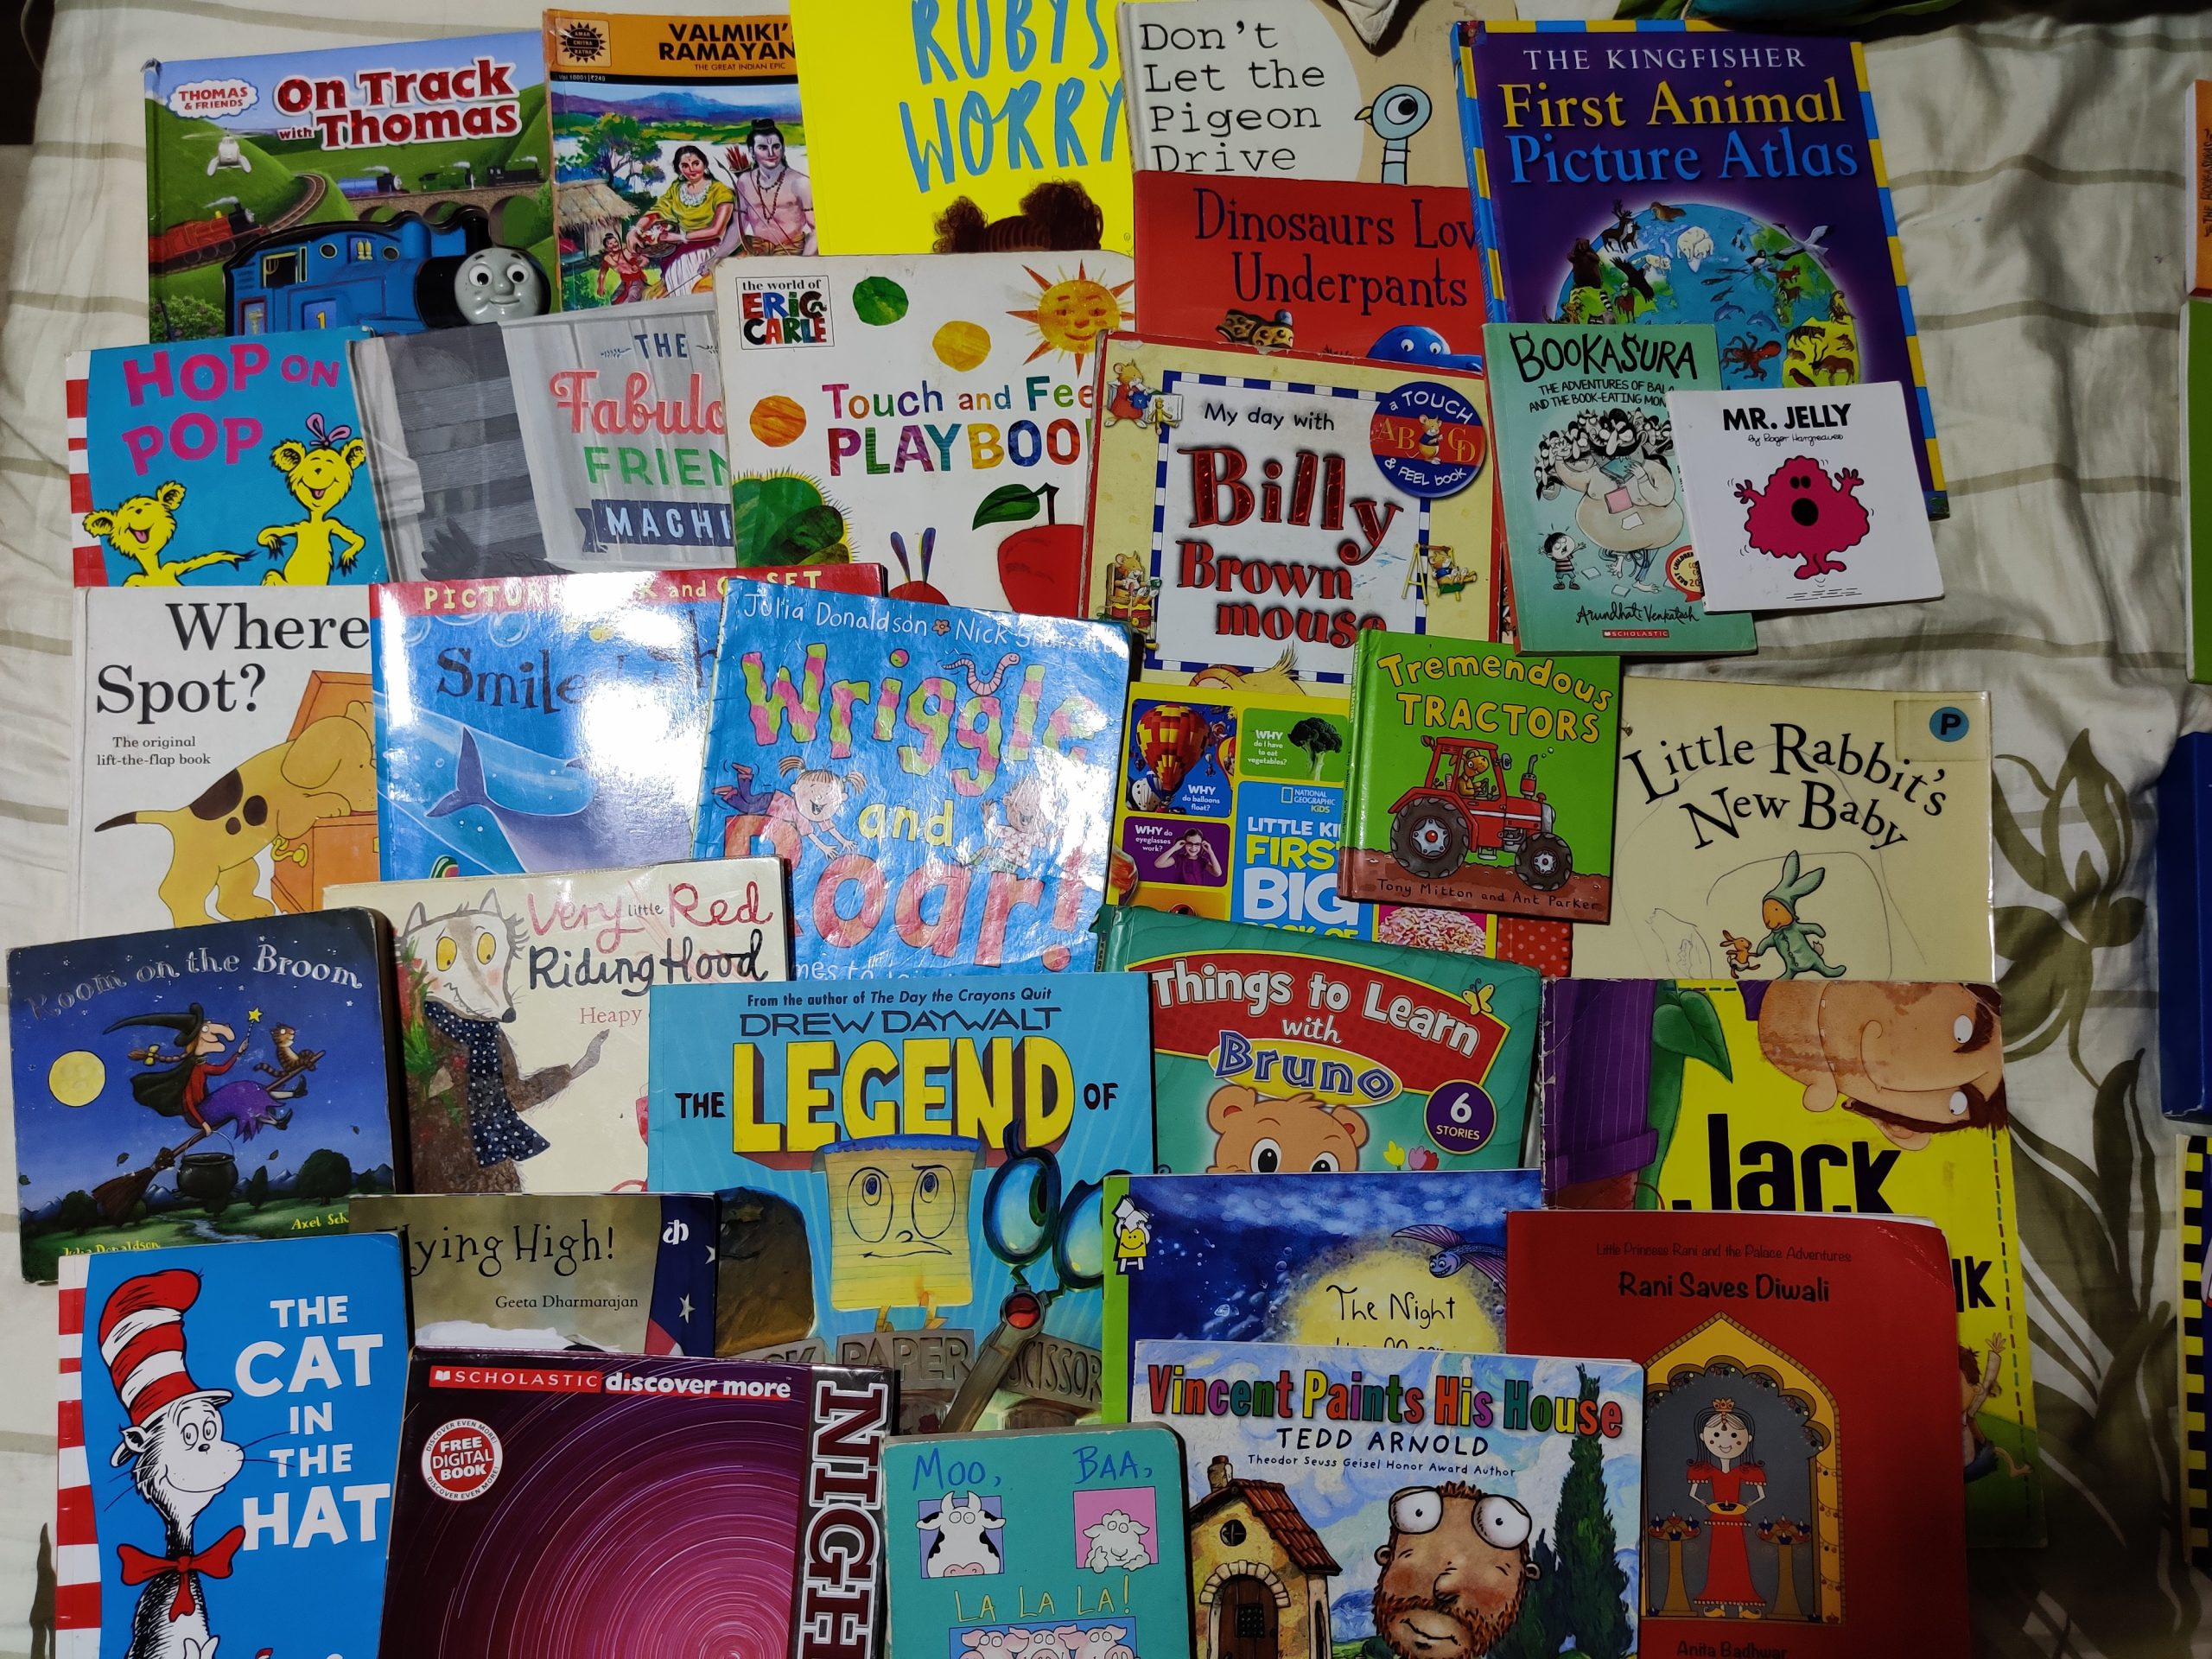 My little mouse's 30 favourite reads #kbcBookBingoJr (0-6years)